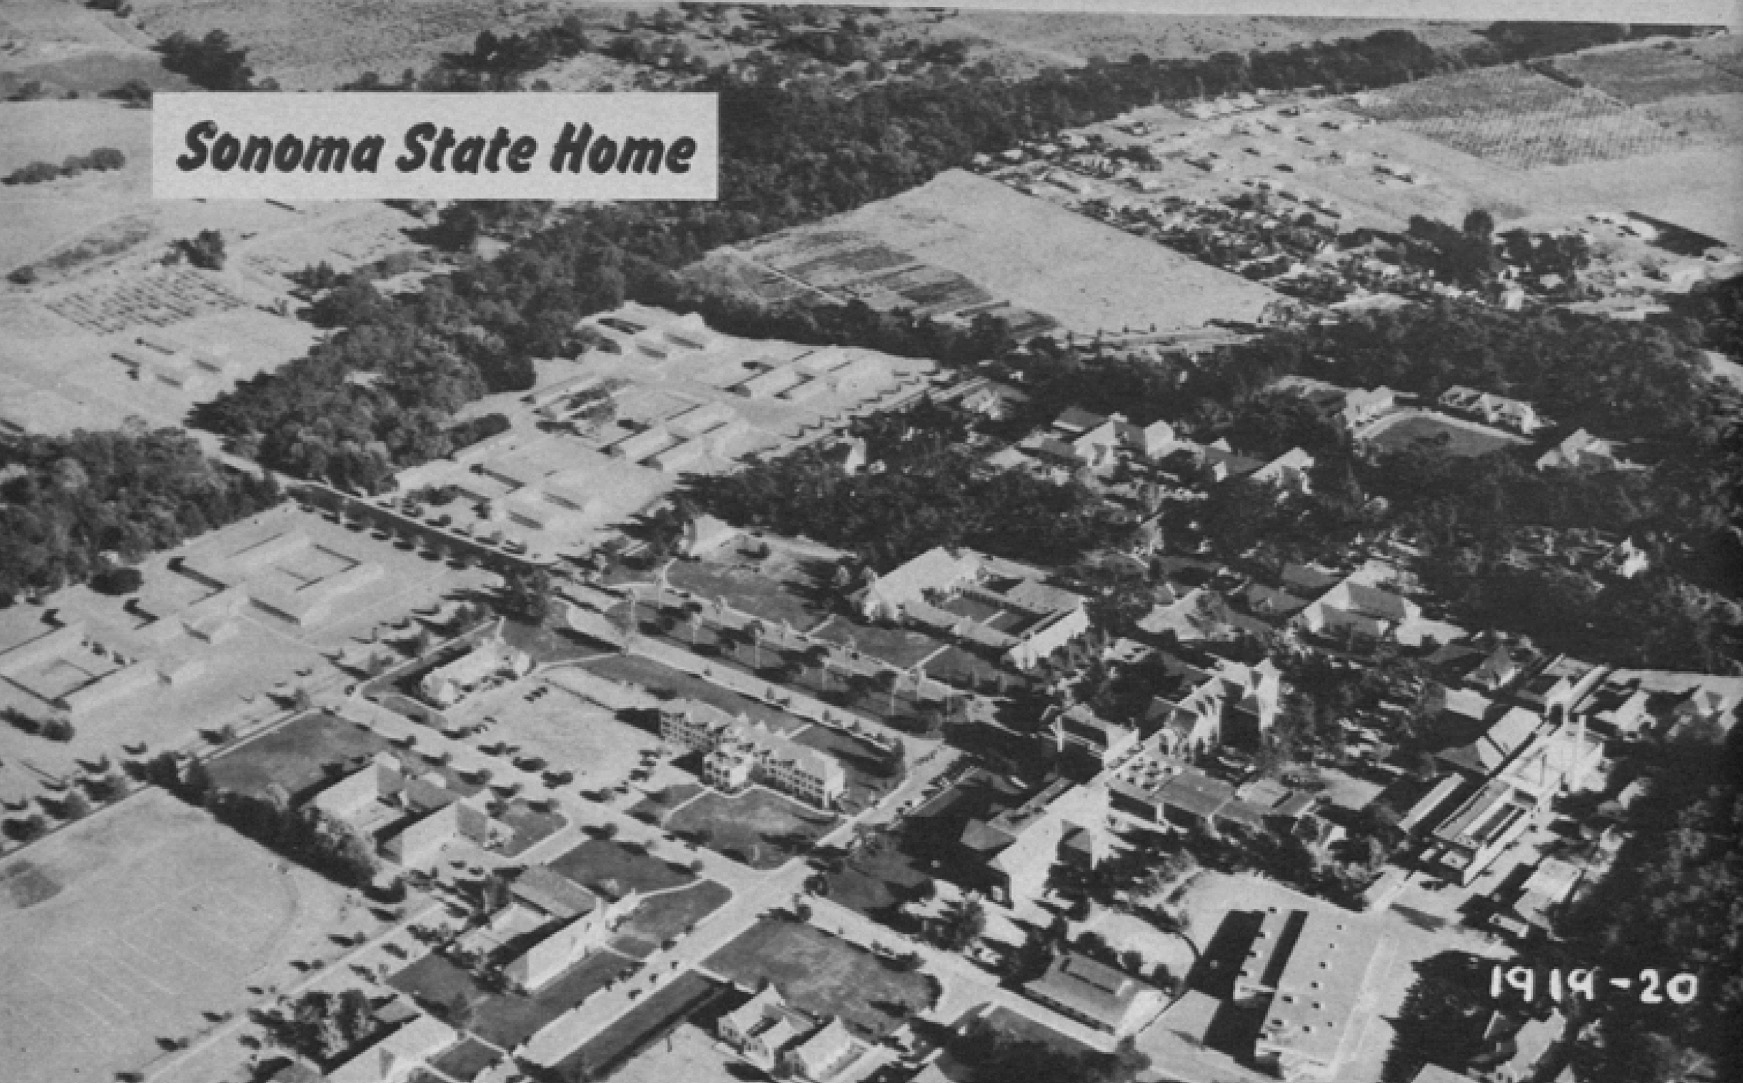 The Sonoma State Home, located at Eldridge, California. Image published in the Biennial Report for 1950-1952 by State of California Department of Mental Hygiene and provided by Alex Wellerstein.